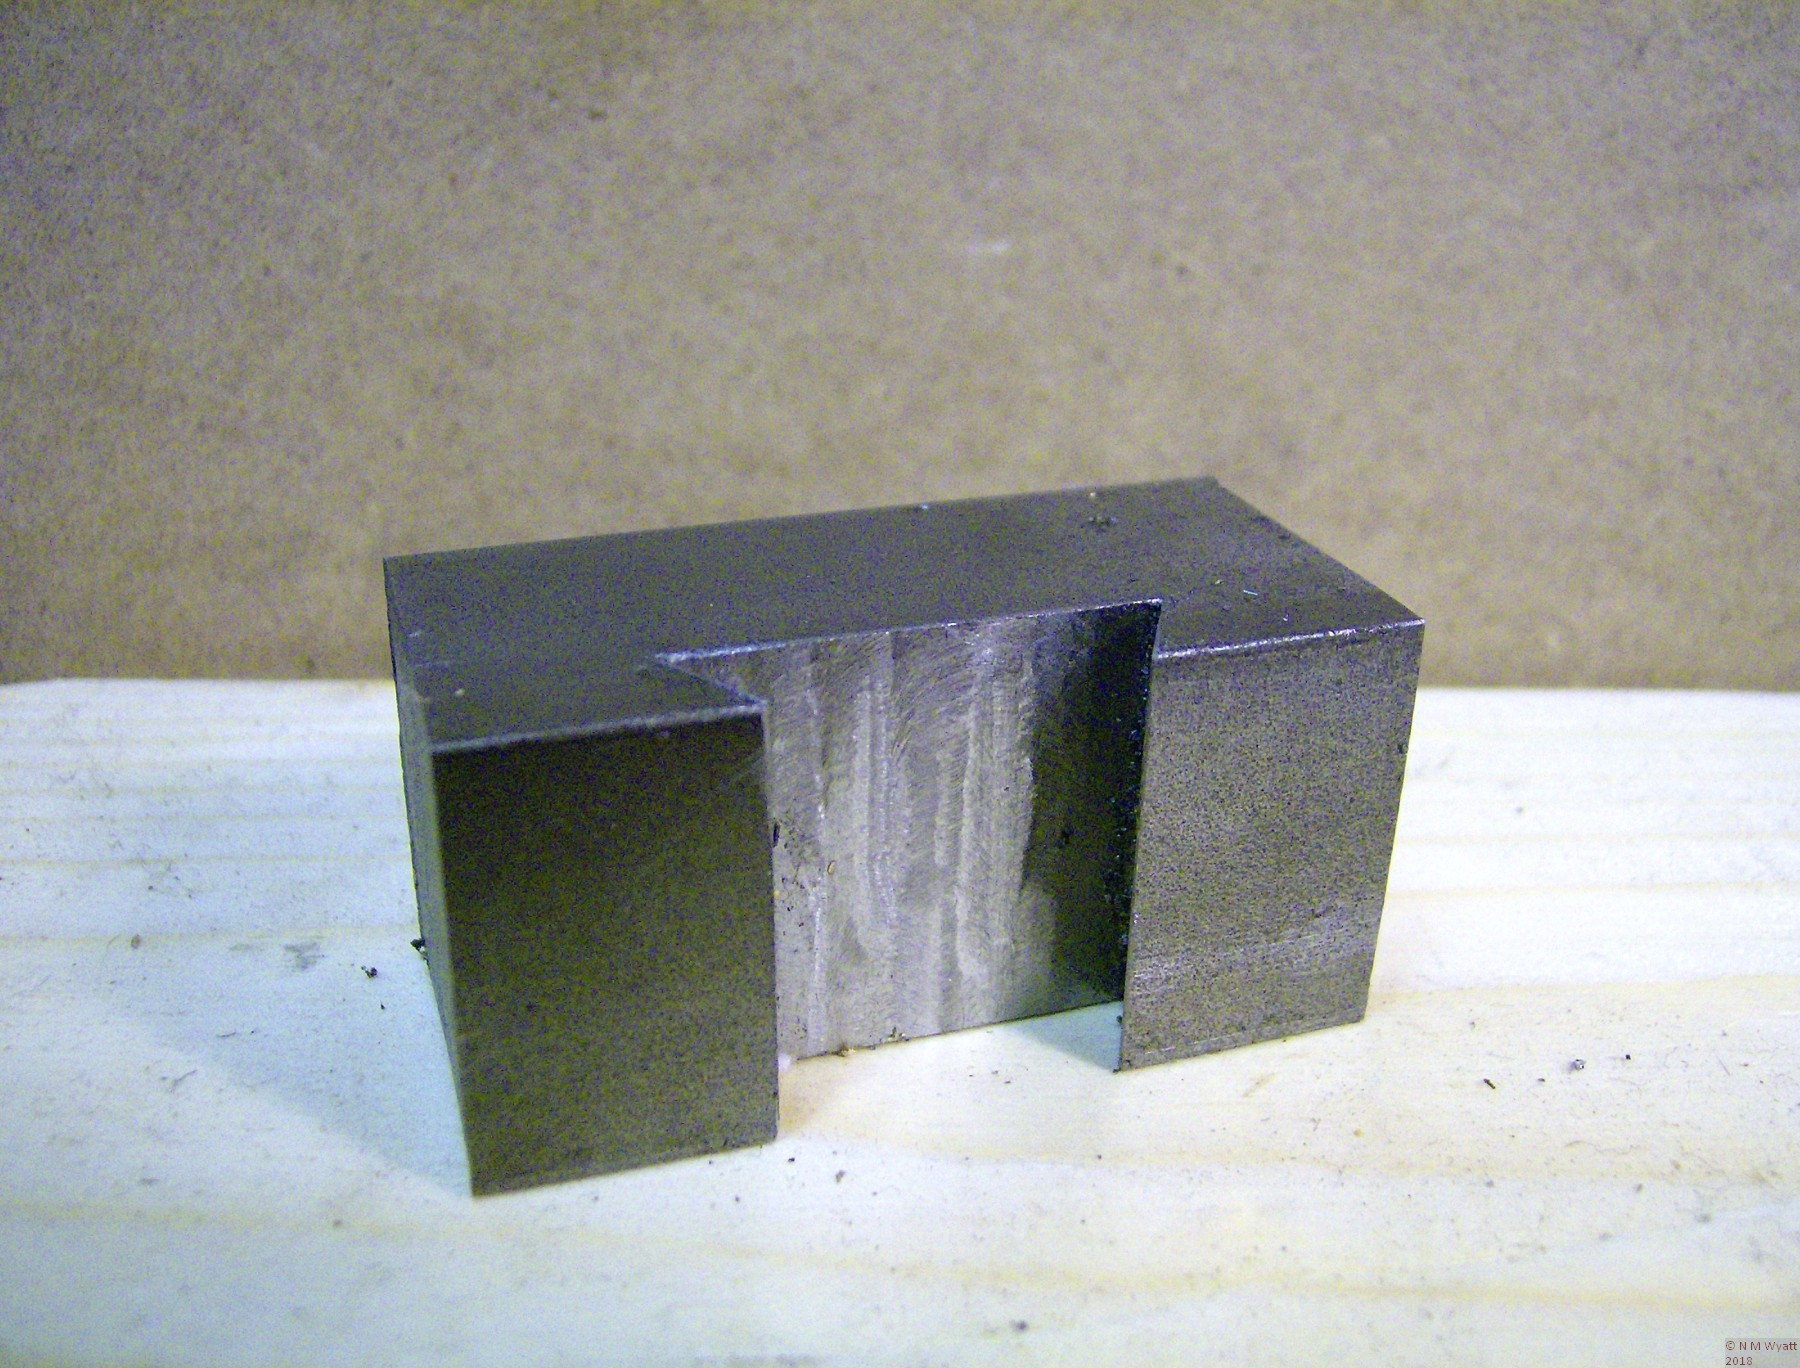 A finished toolholder blank with its dovetail